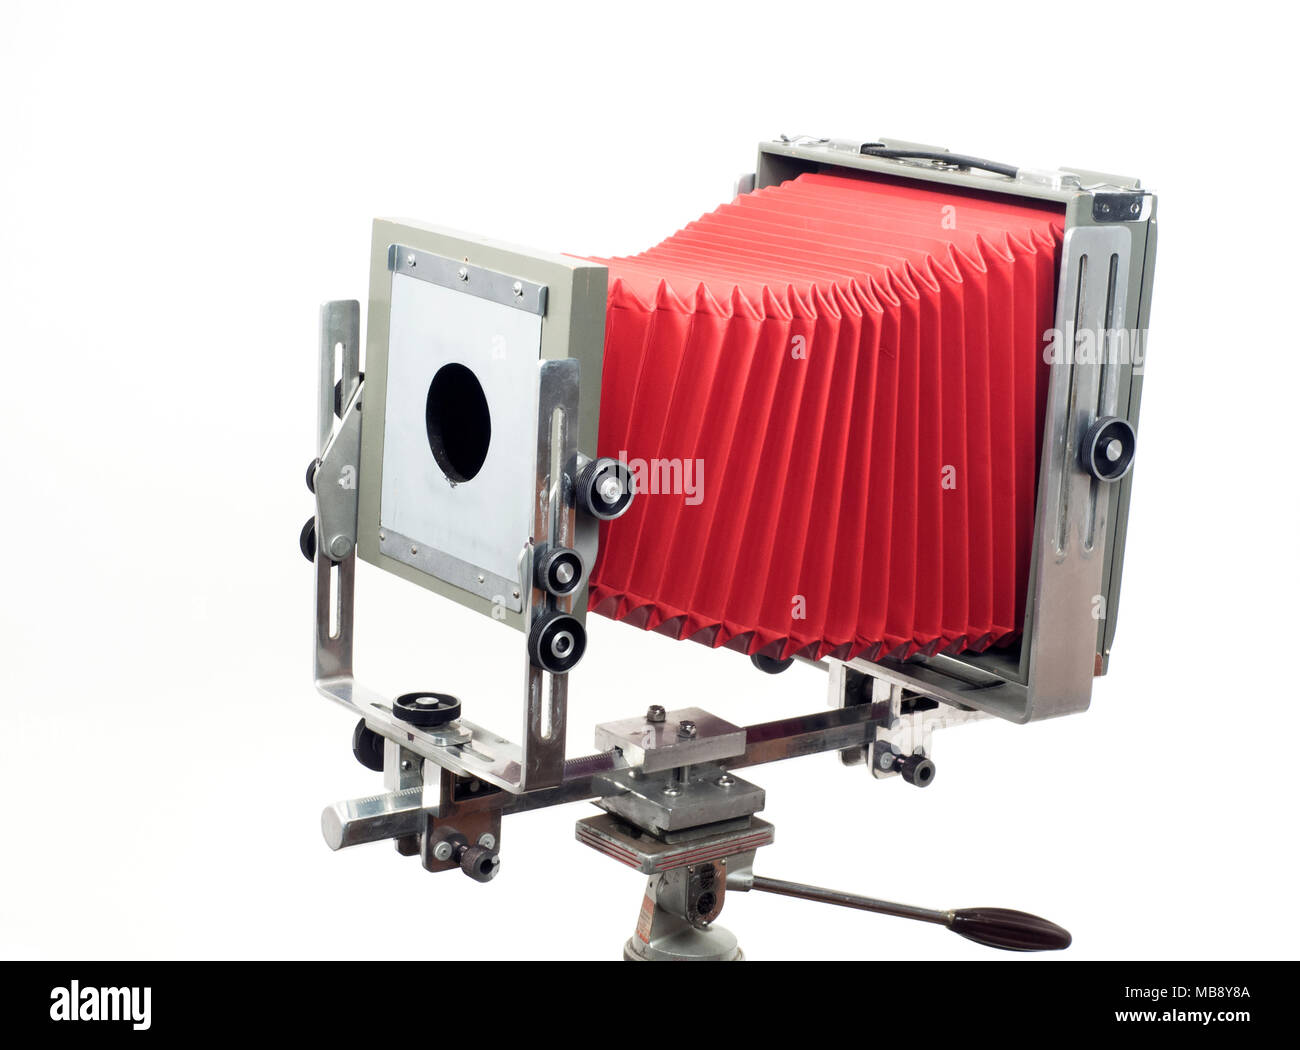 A Burke & James Grover 8x10 format monorail studio view camera with red bellows - Stock Image